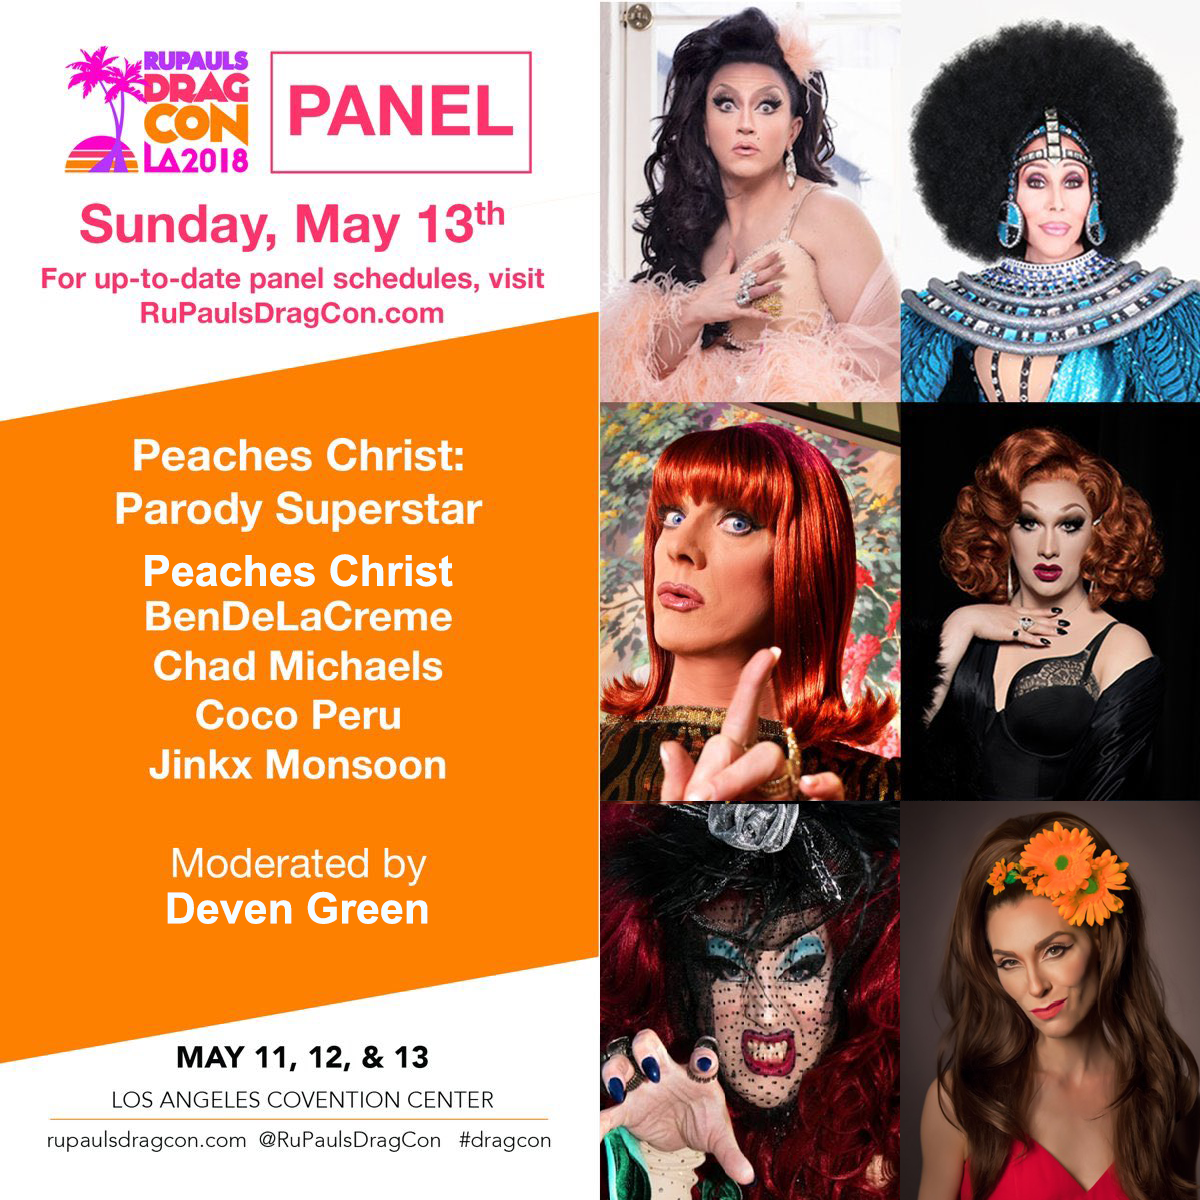 Deven Green rupauls dragcon 2018 peaches christ